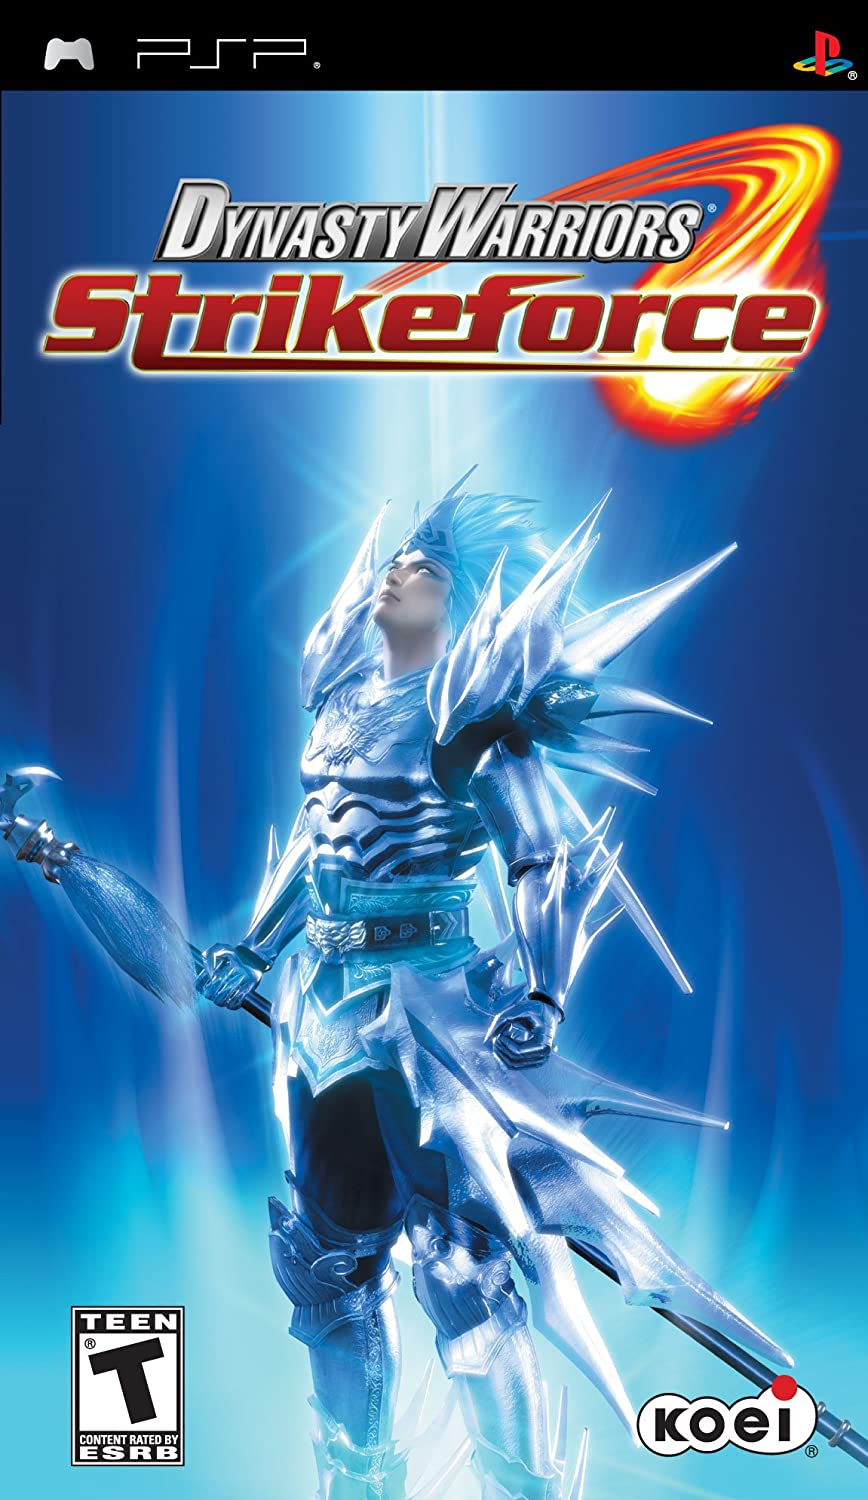 Strikeforce sports coupons - Amazon Com Dynasty Warriors Strikeforce Playstation 3 Koei Corporation Video Games